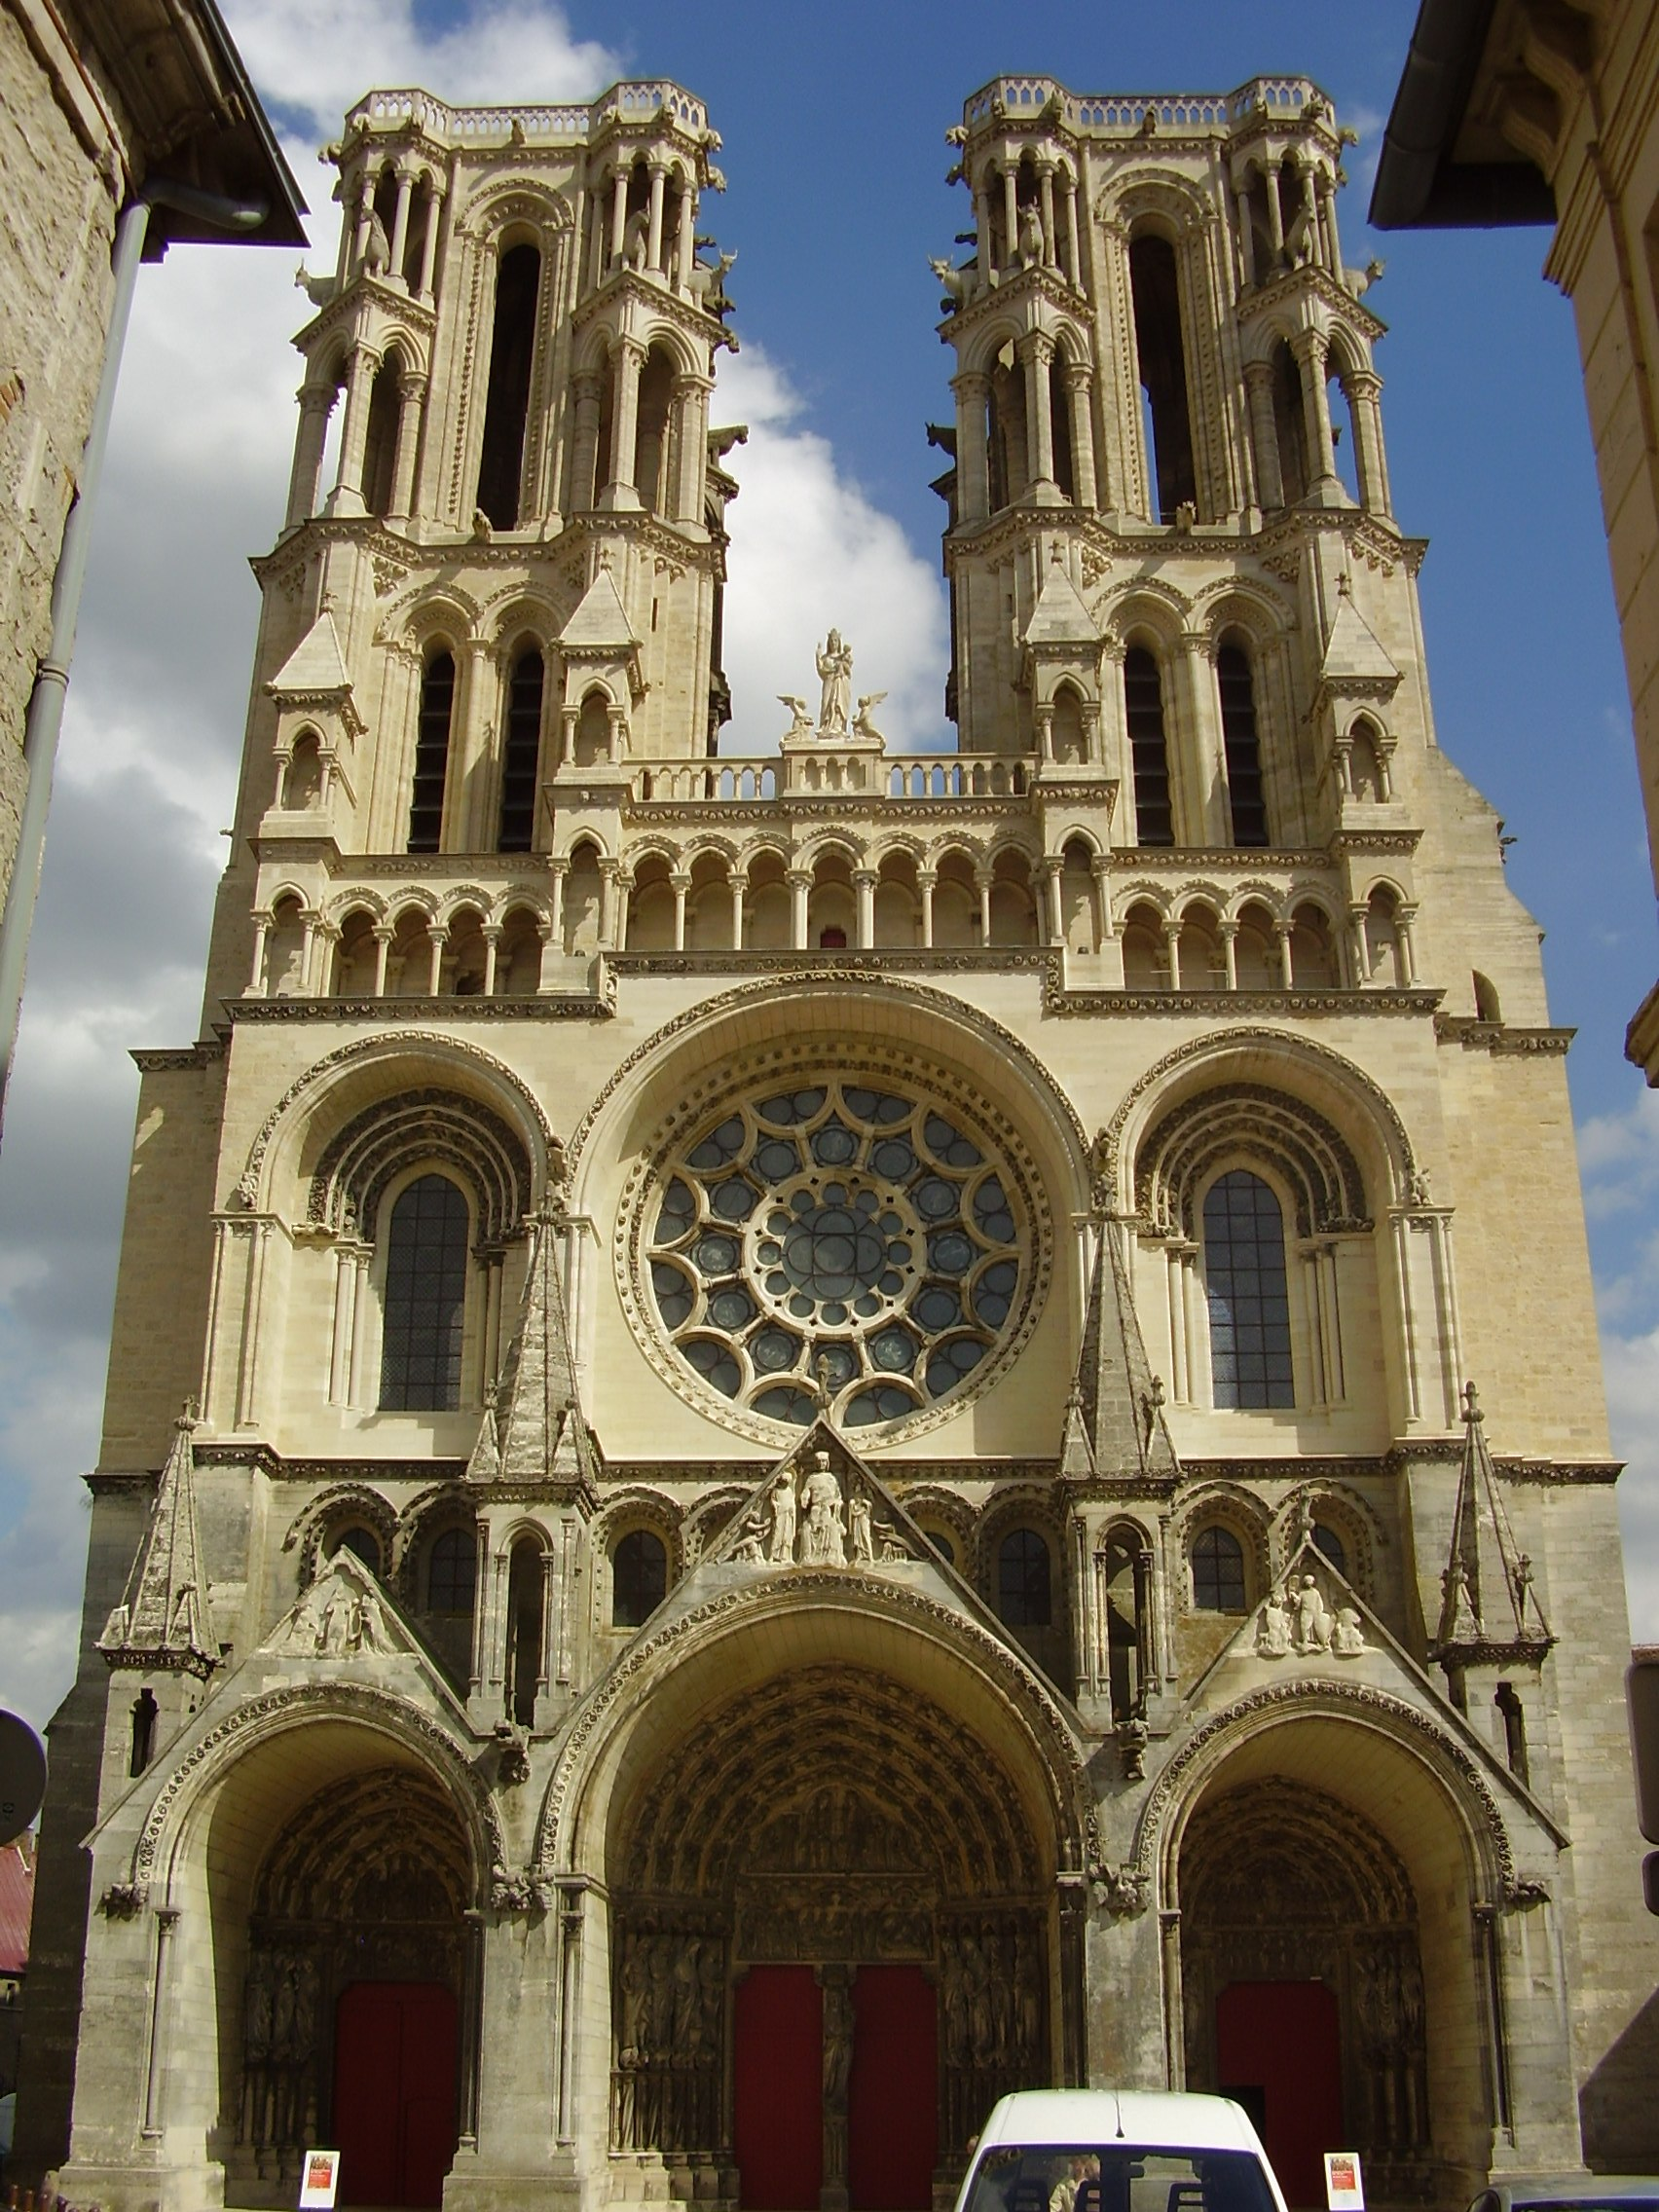 An image of the front facade of the Notre-Dame de Laon Cathedral taken in July 2009 on a sunny day. The Cathedral is a pale yellow stone colour on a bright sky blue background.